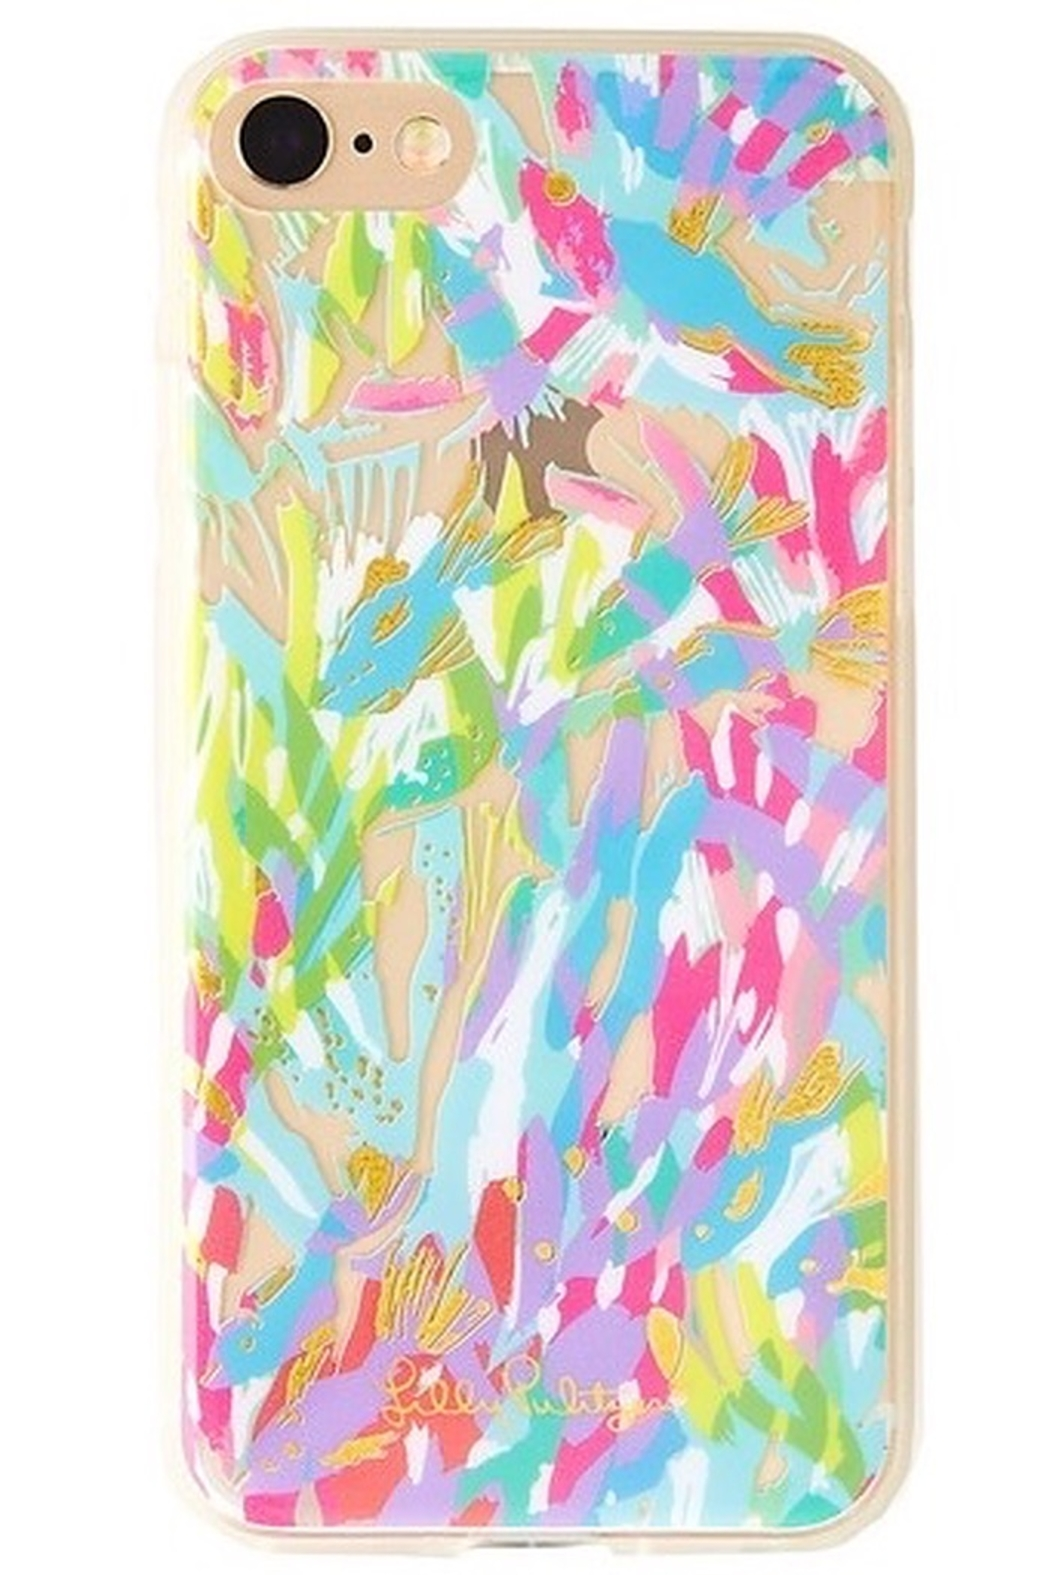 Lilly Pulitzer iPhone 7 Cover SPARKLING SANDS/GYPSET PARADISE - Main Image